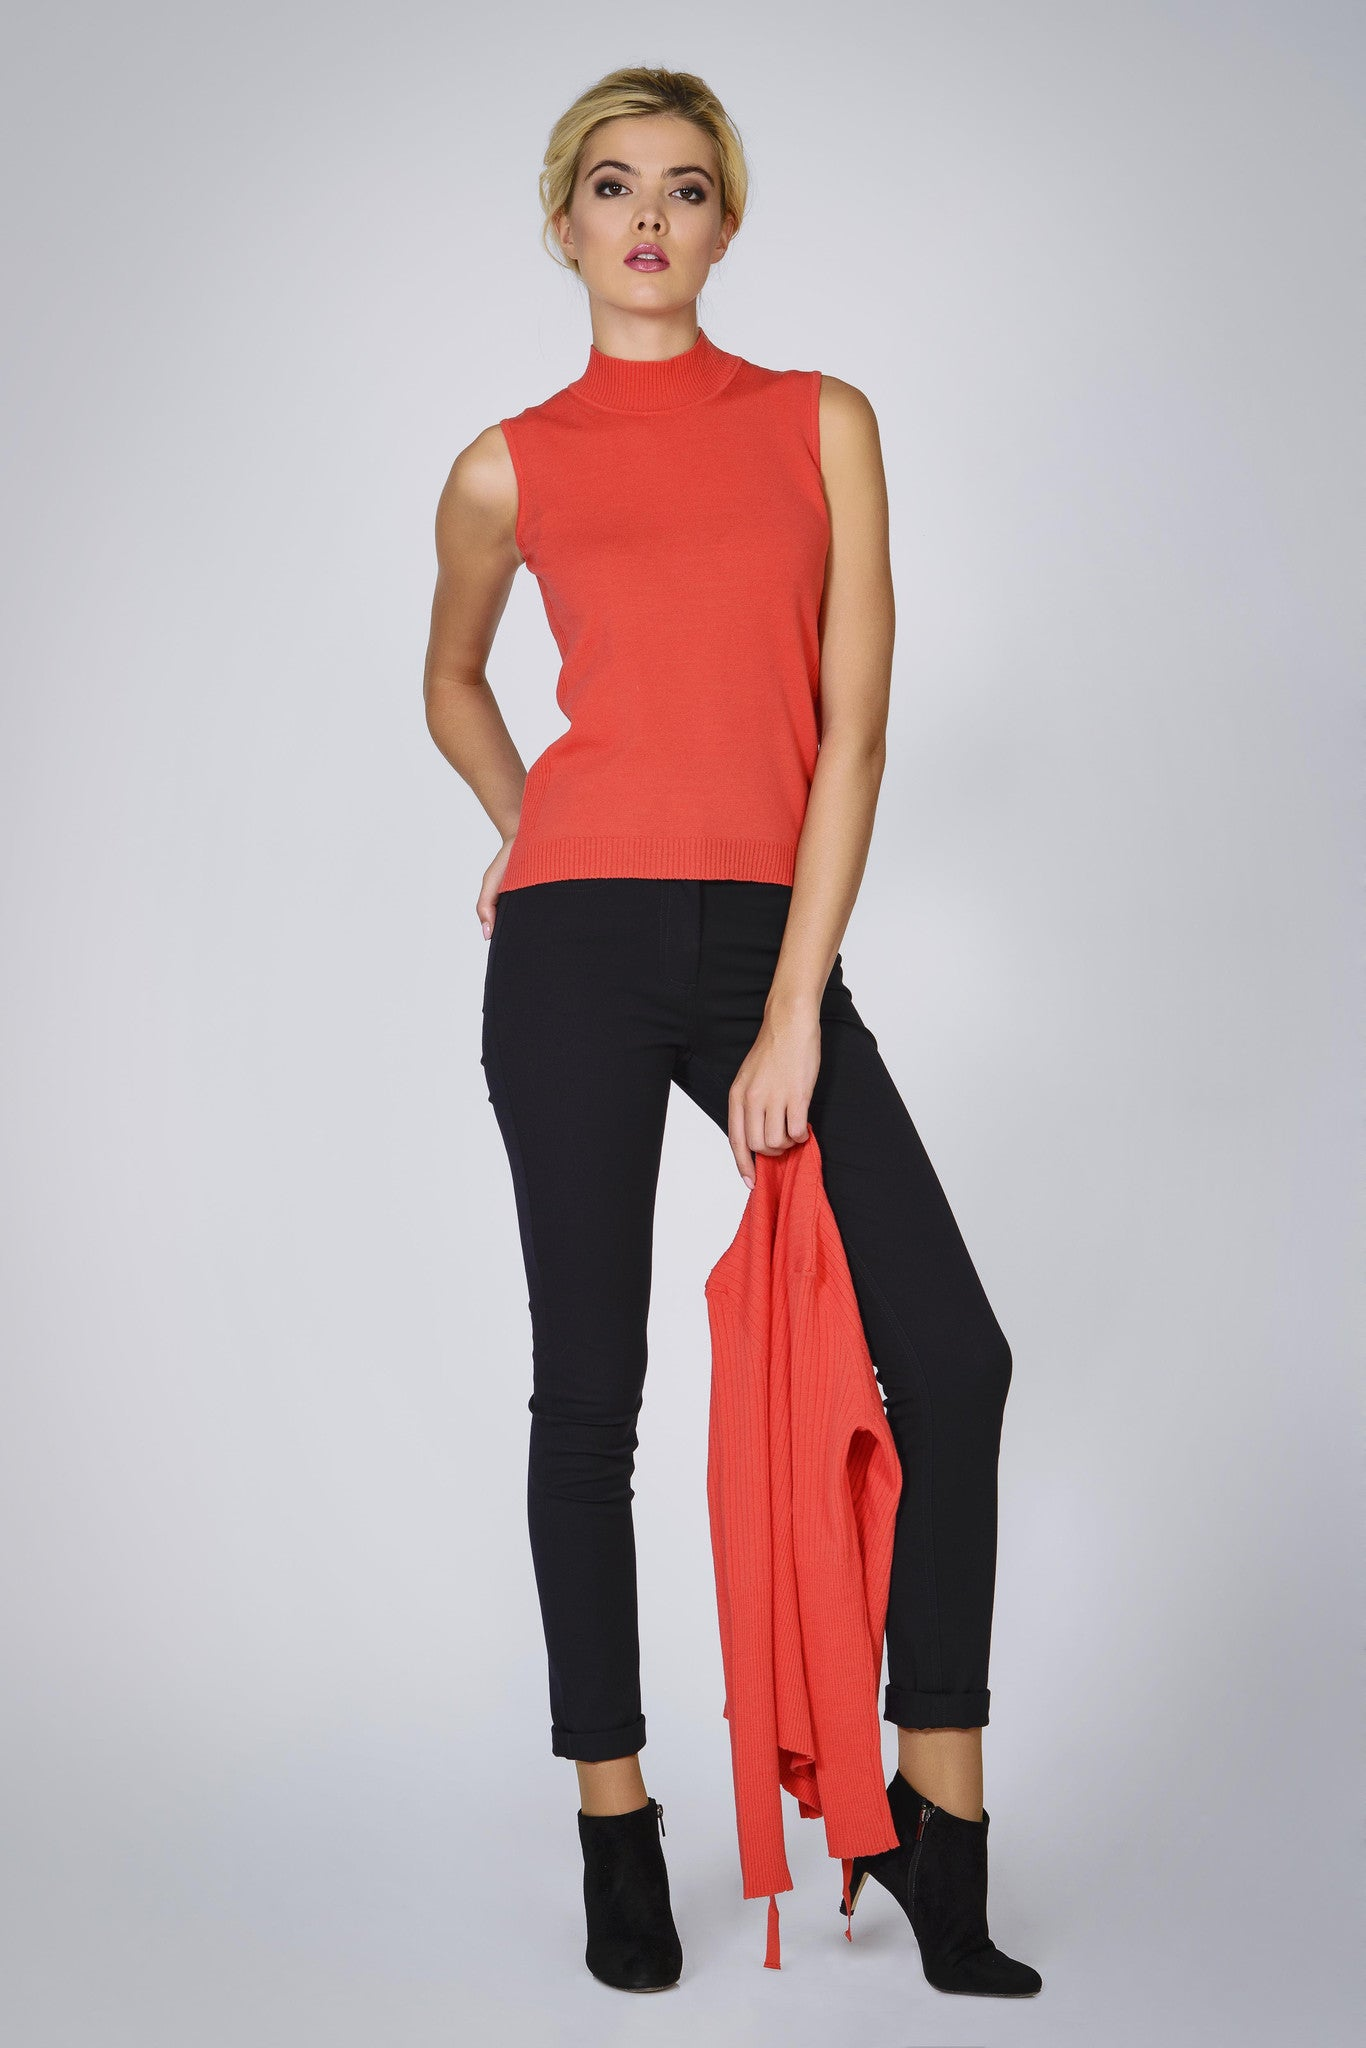 Coral wool cardigan and sleeveless top